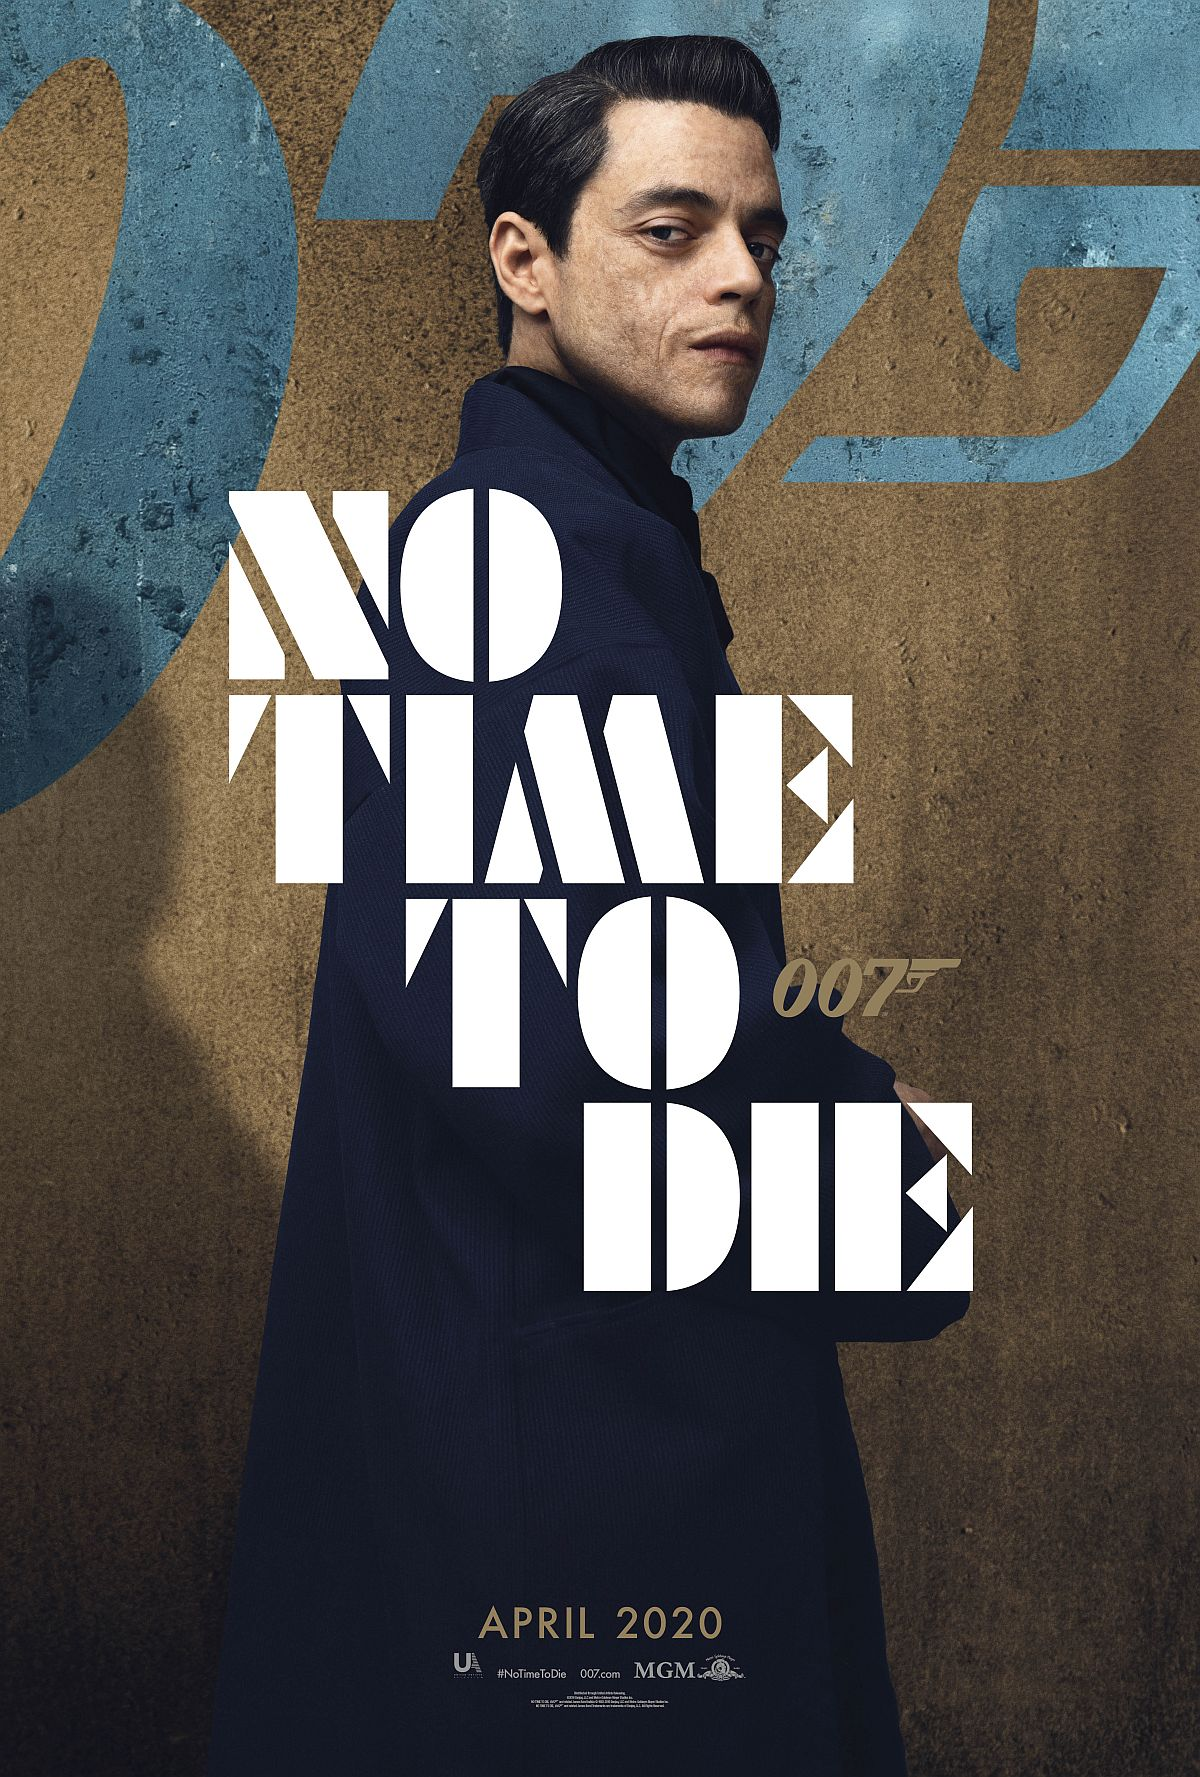 Rami Malek poster for No Time To Die